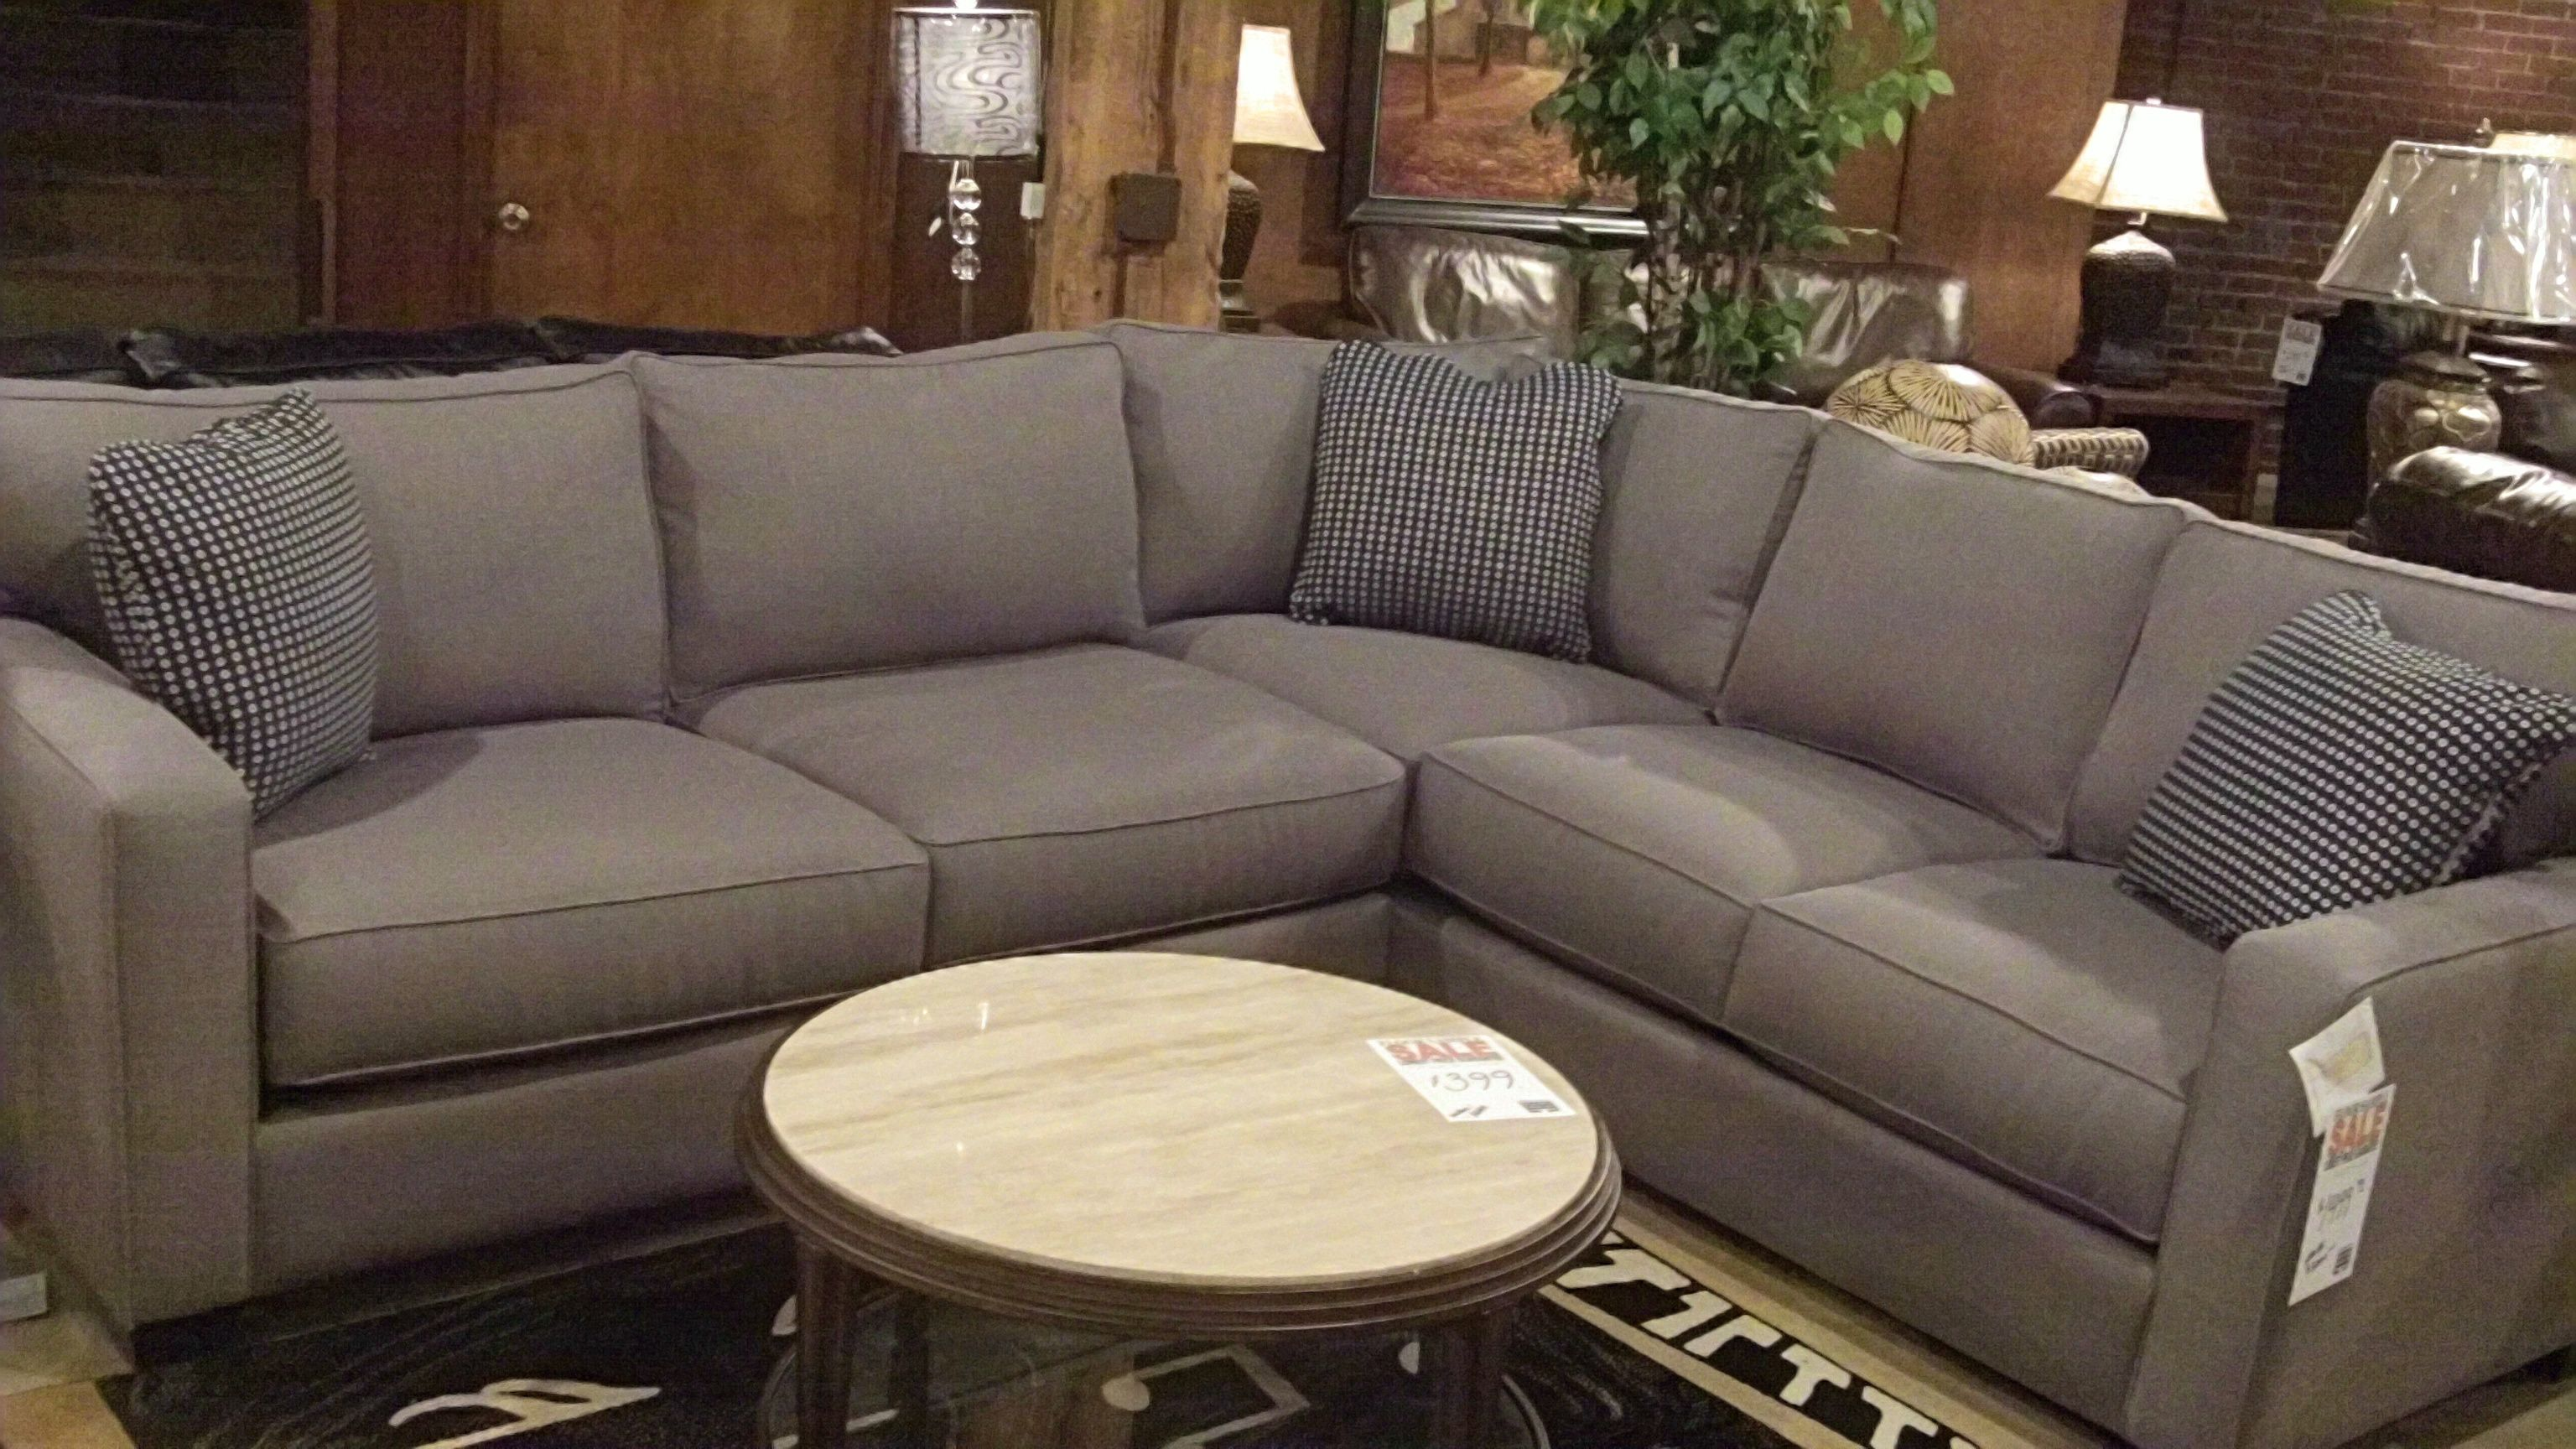 Jonathan Louis Sectional Sofa Pict Of Furniture Jonathan Louis Sectional Sofa Modern Sectional Sofa With : jonathan louis artemis sectional - Sectionals, Sofas & Couches